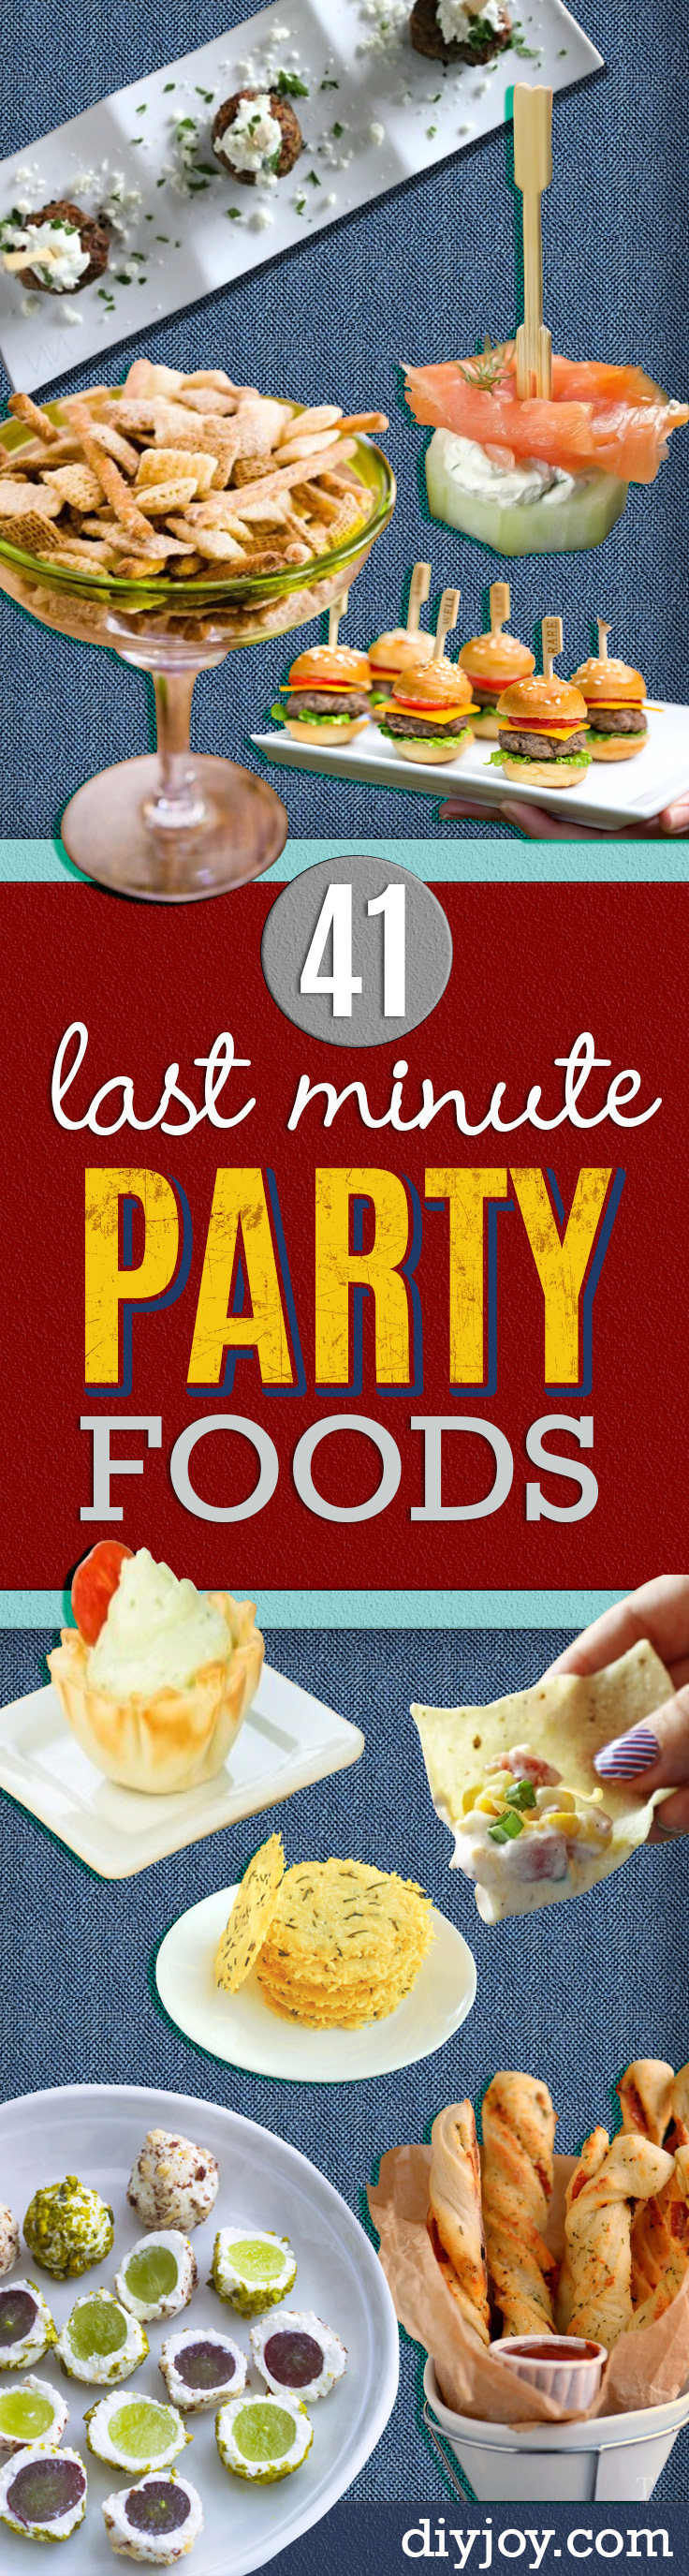 41 last minute party